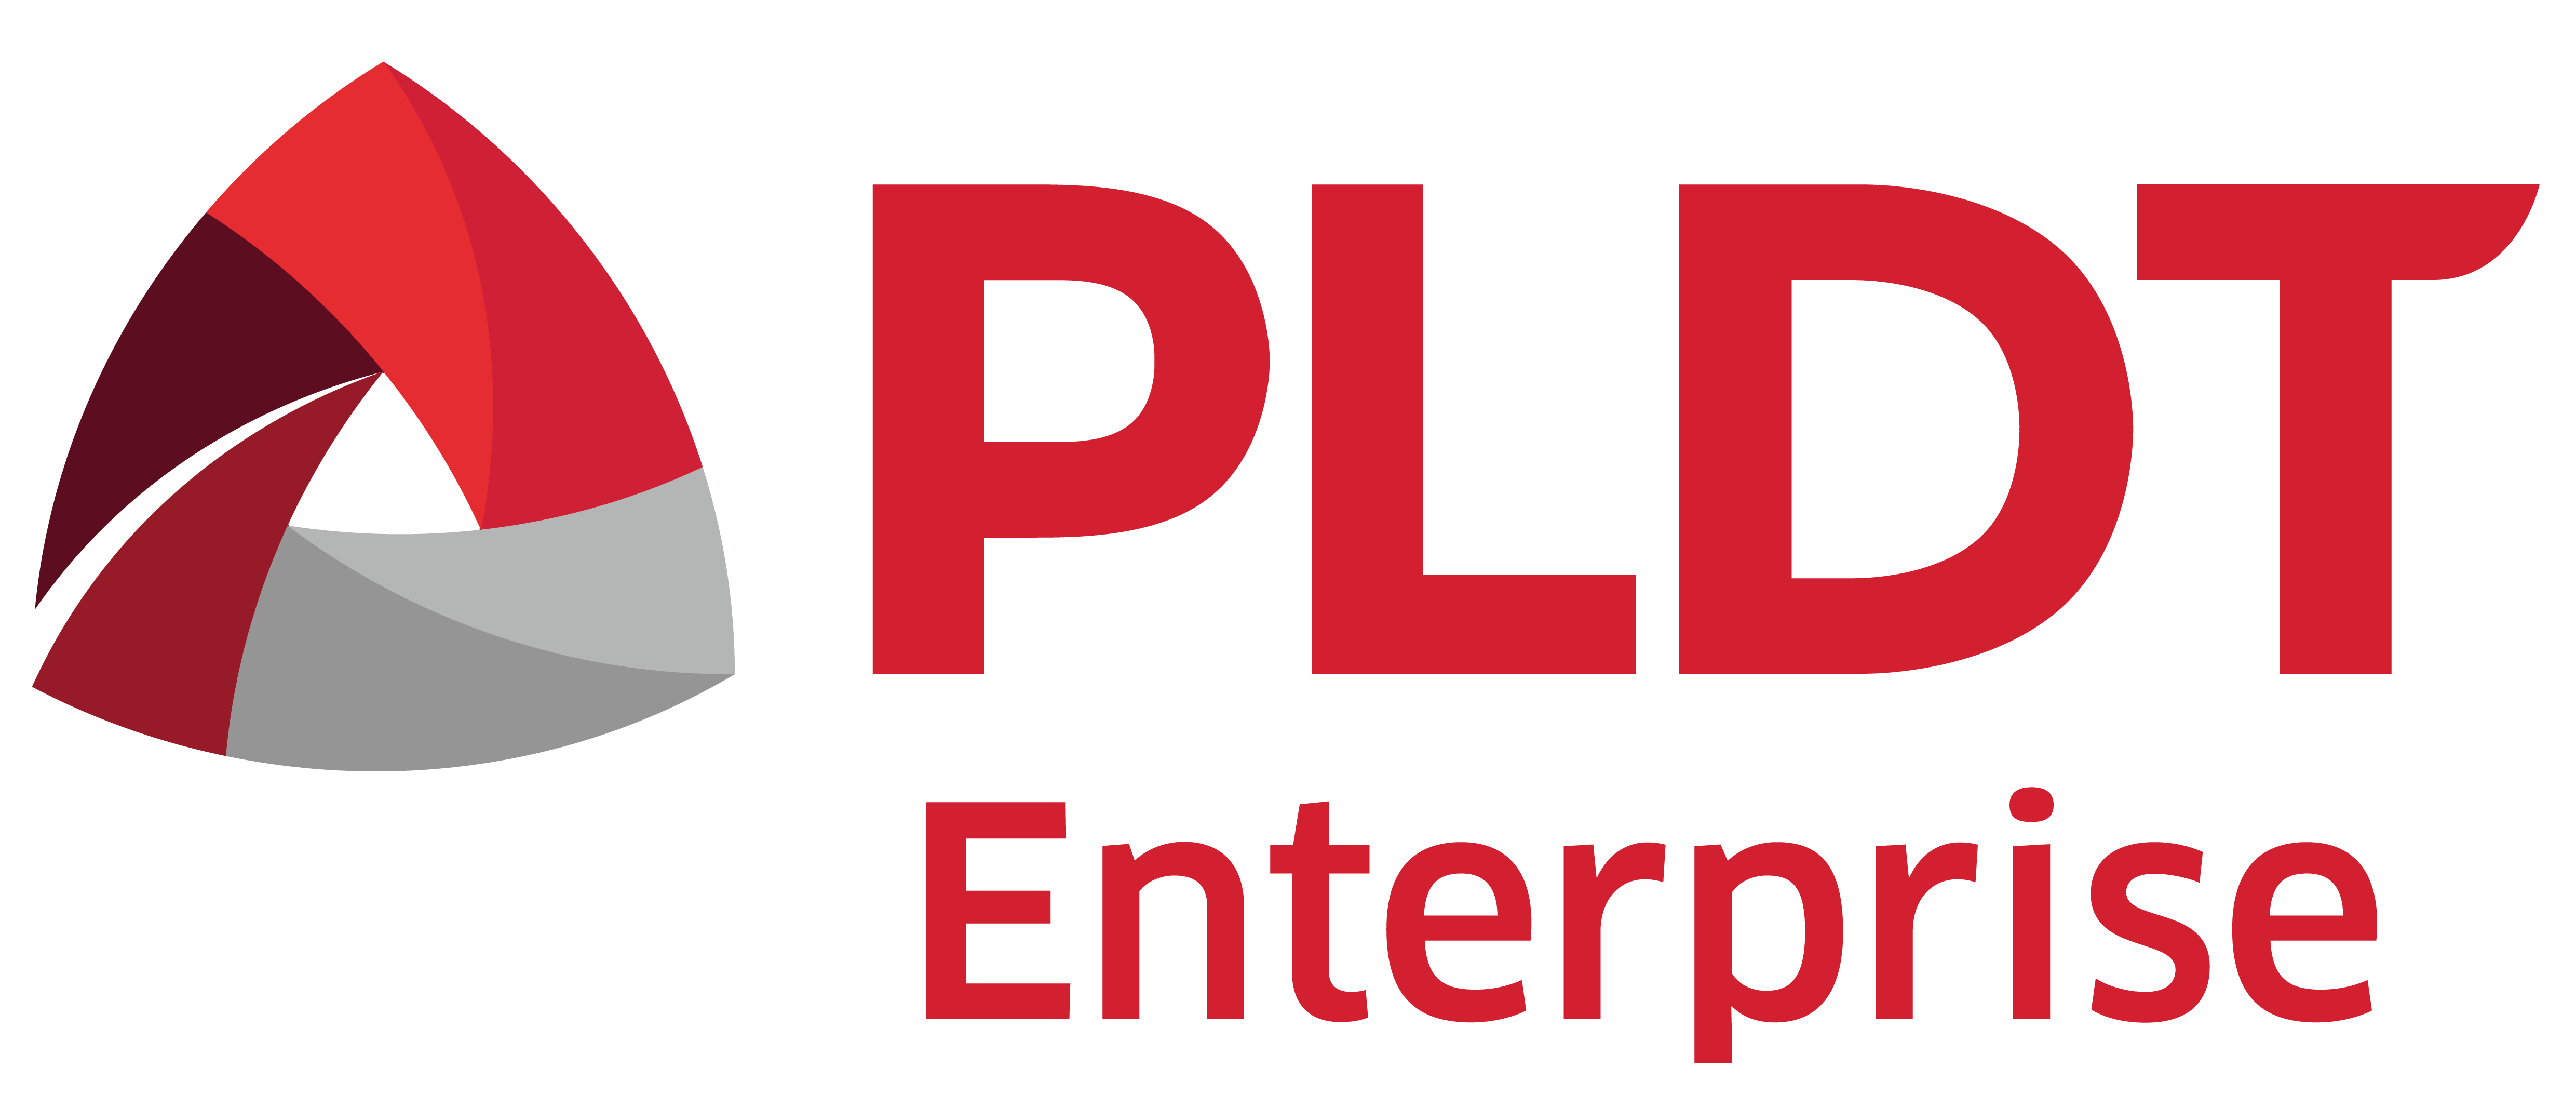 PLDT Enterprise addresses need for secure, high-performance connectivity with iGate